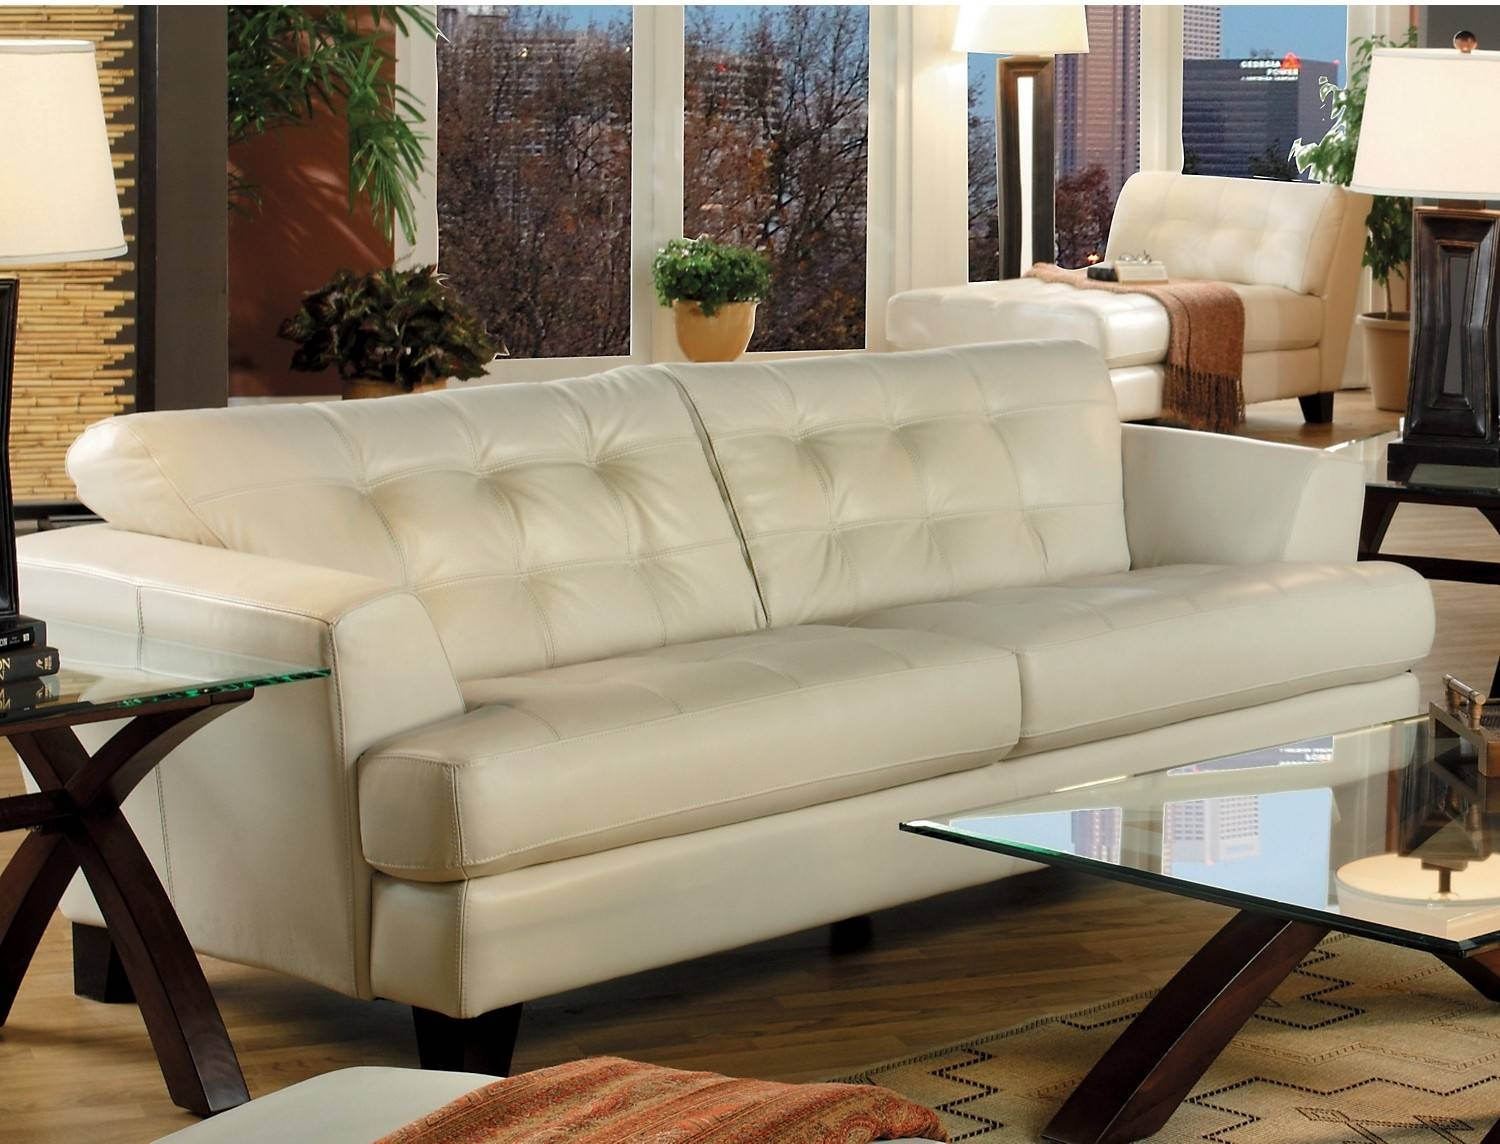 Furniture: Cindy Crawford Sectional Sofa For Elegant Living Room pertaining to Cindy Crawford Microfiber Sofas (Image 11 of 15)